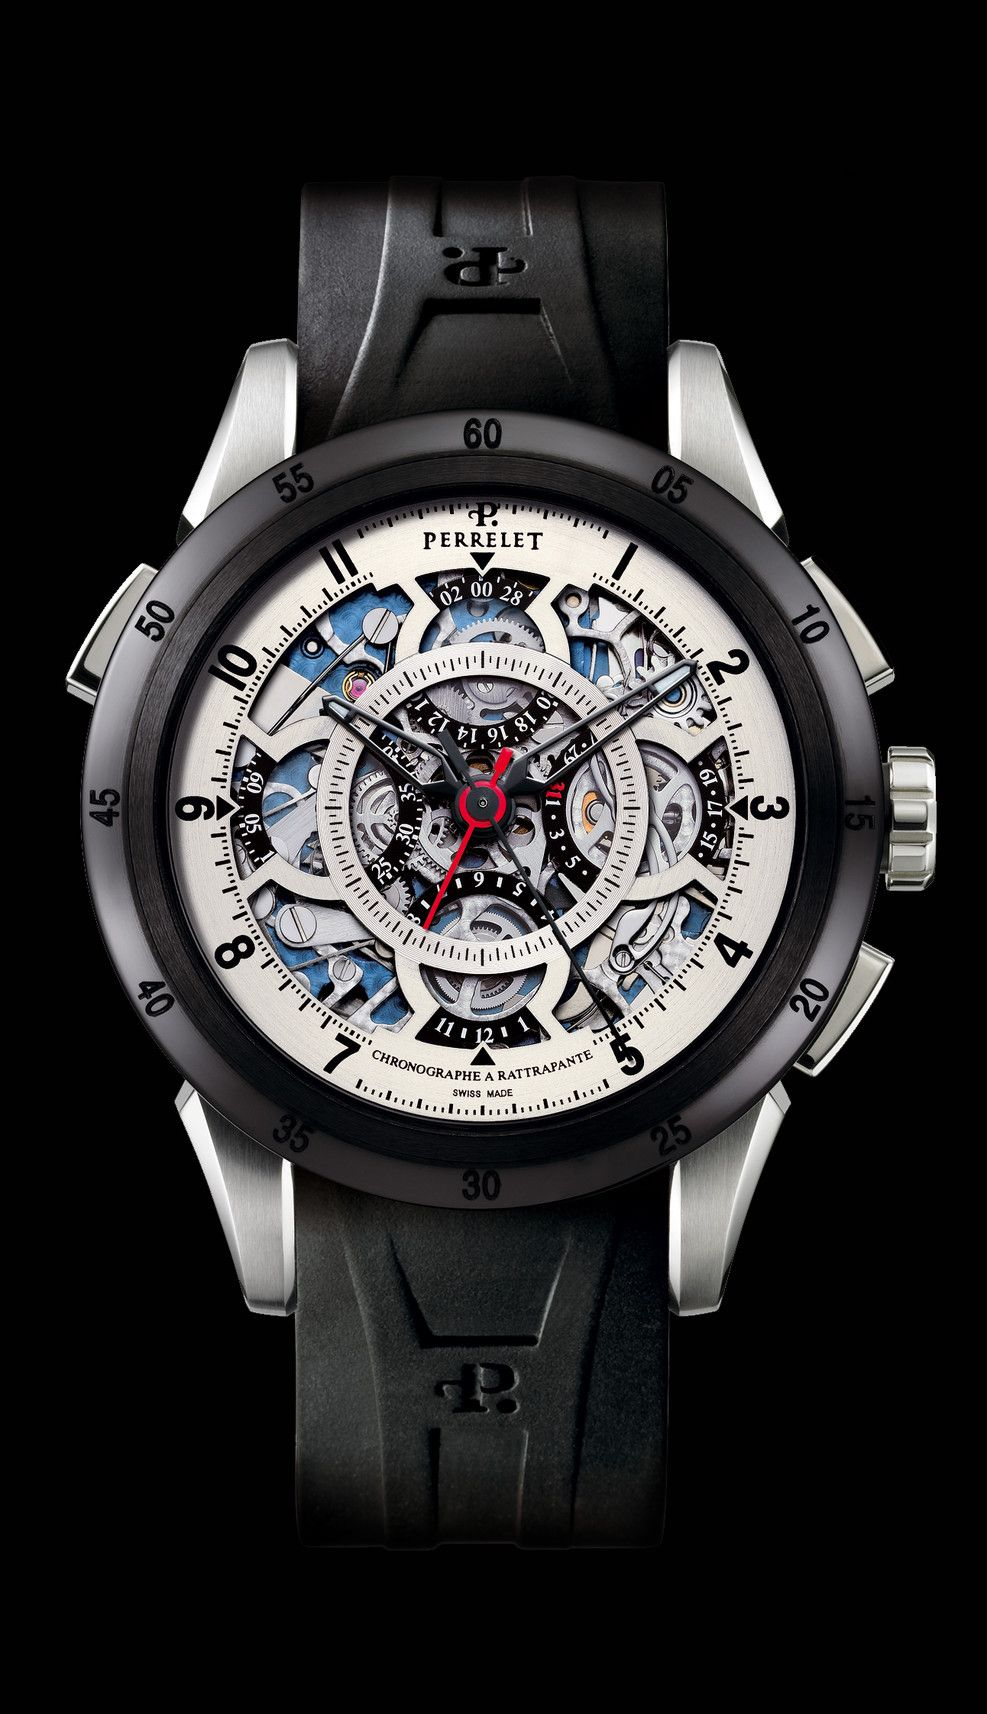 Perrelet A1043/1 splitseconds chronograph watch